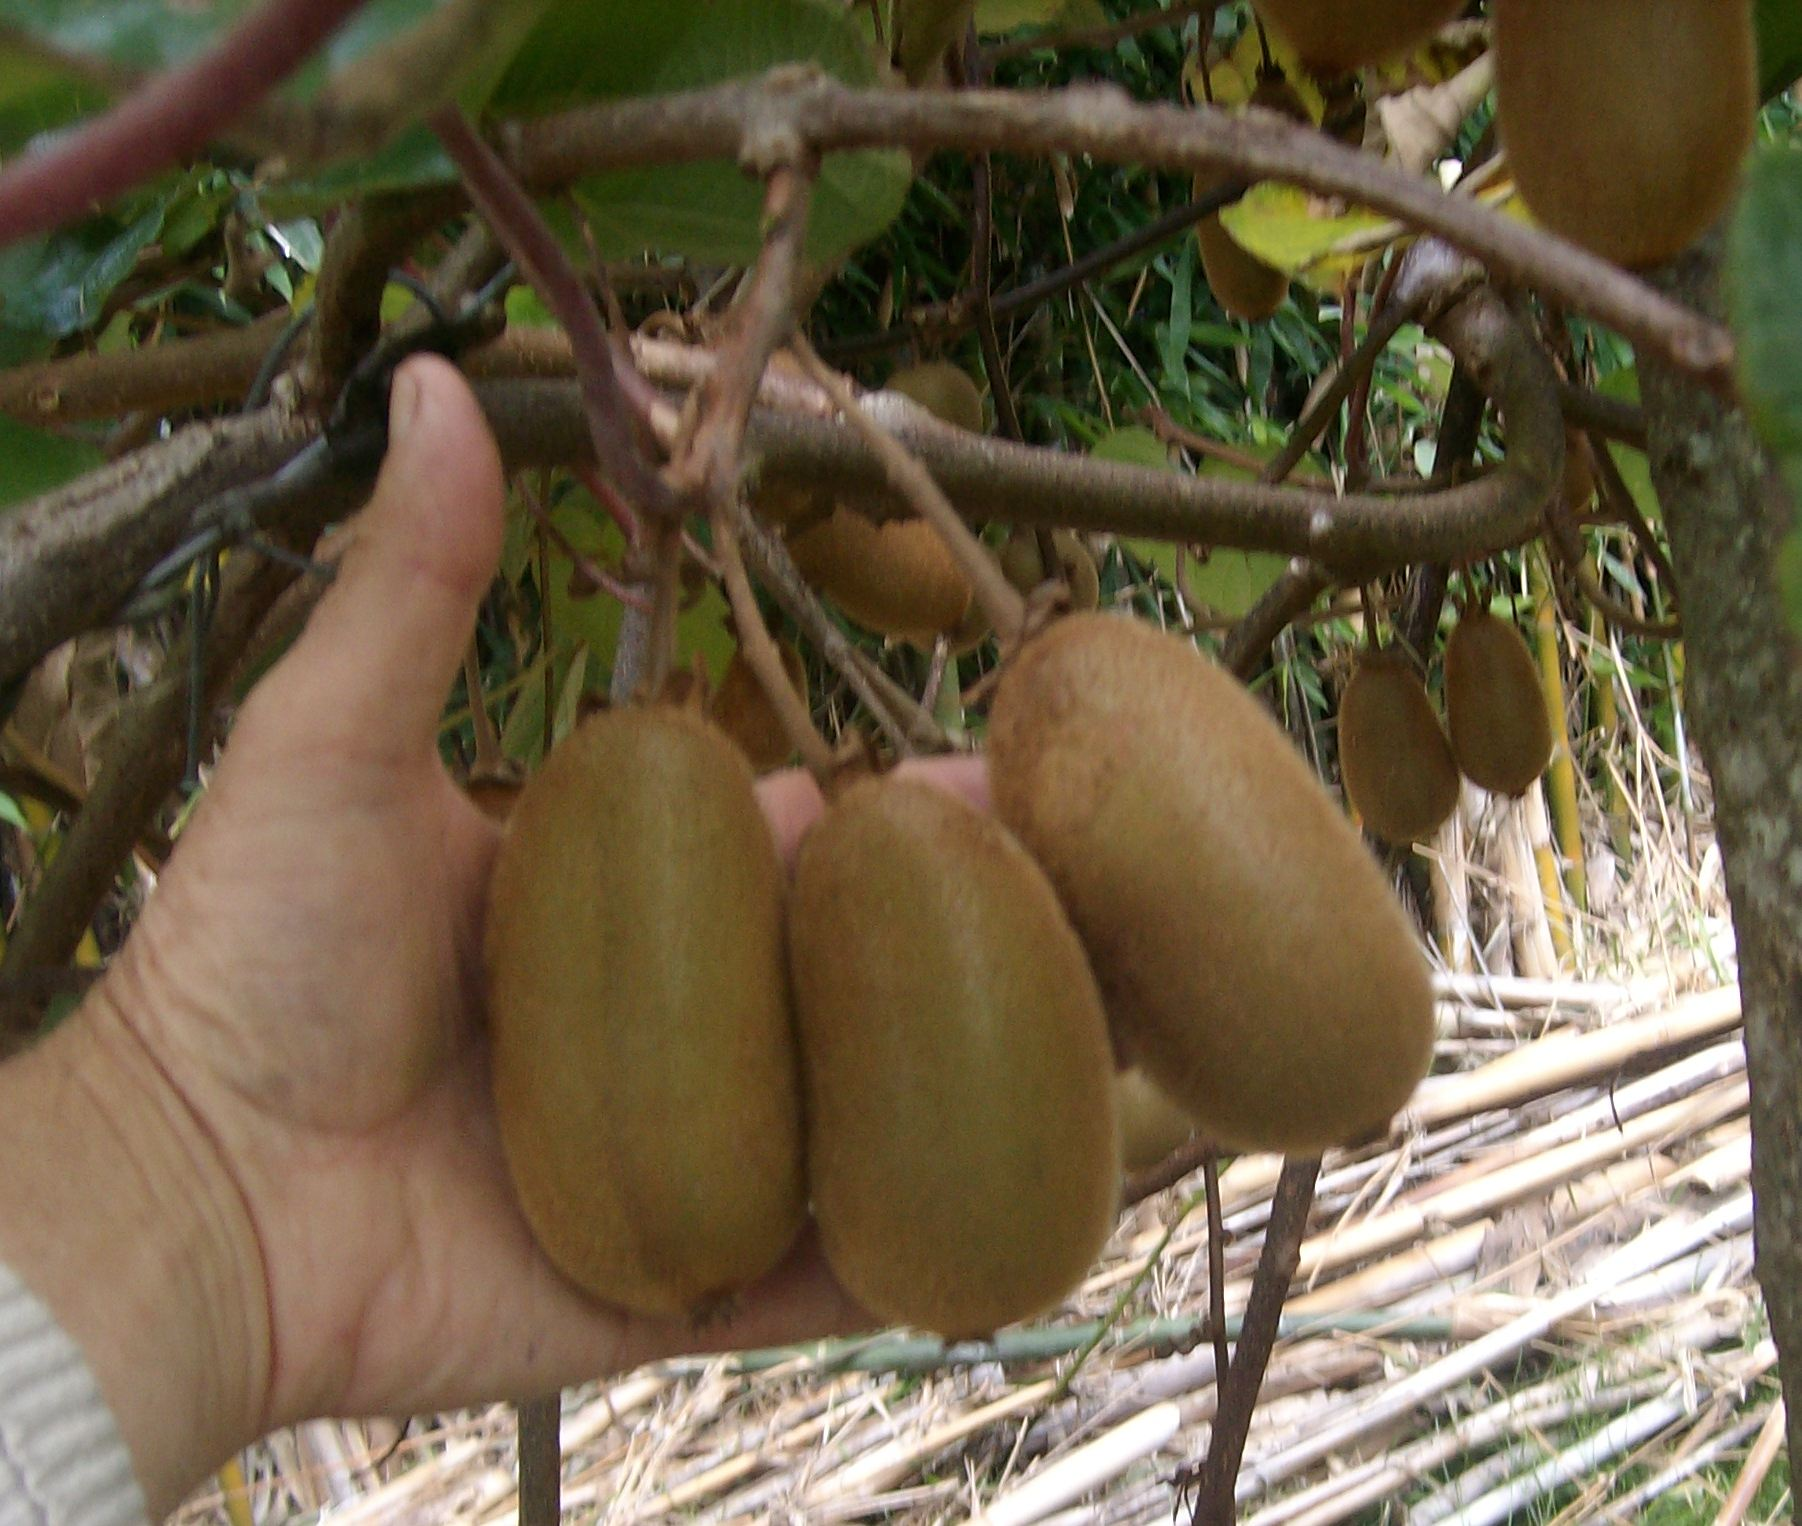 Skelton green kiwifruit variety